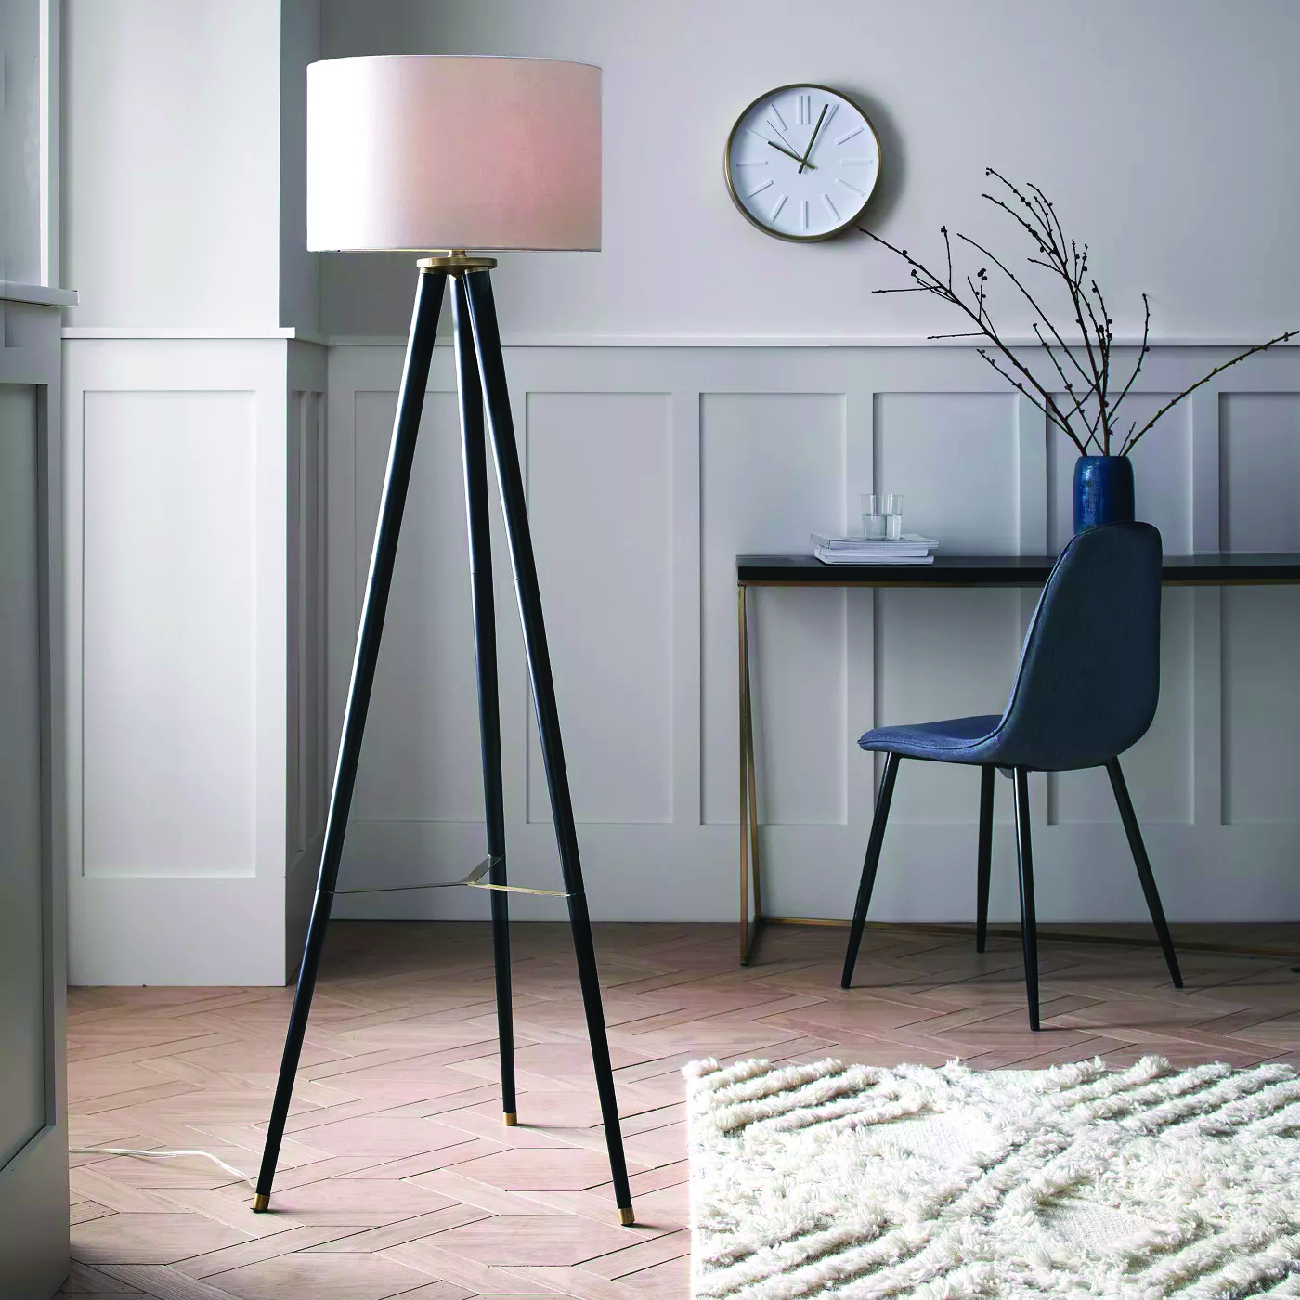 12 Target Floor Lamps That Home Decorators Love Chic And Sugar